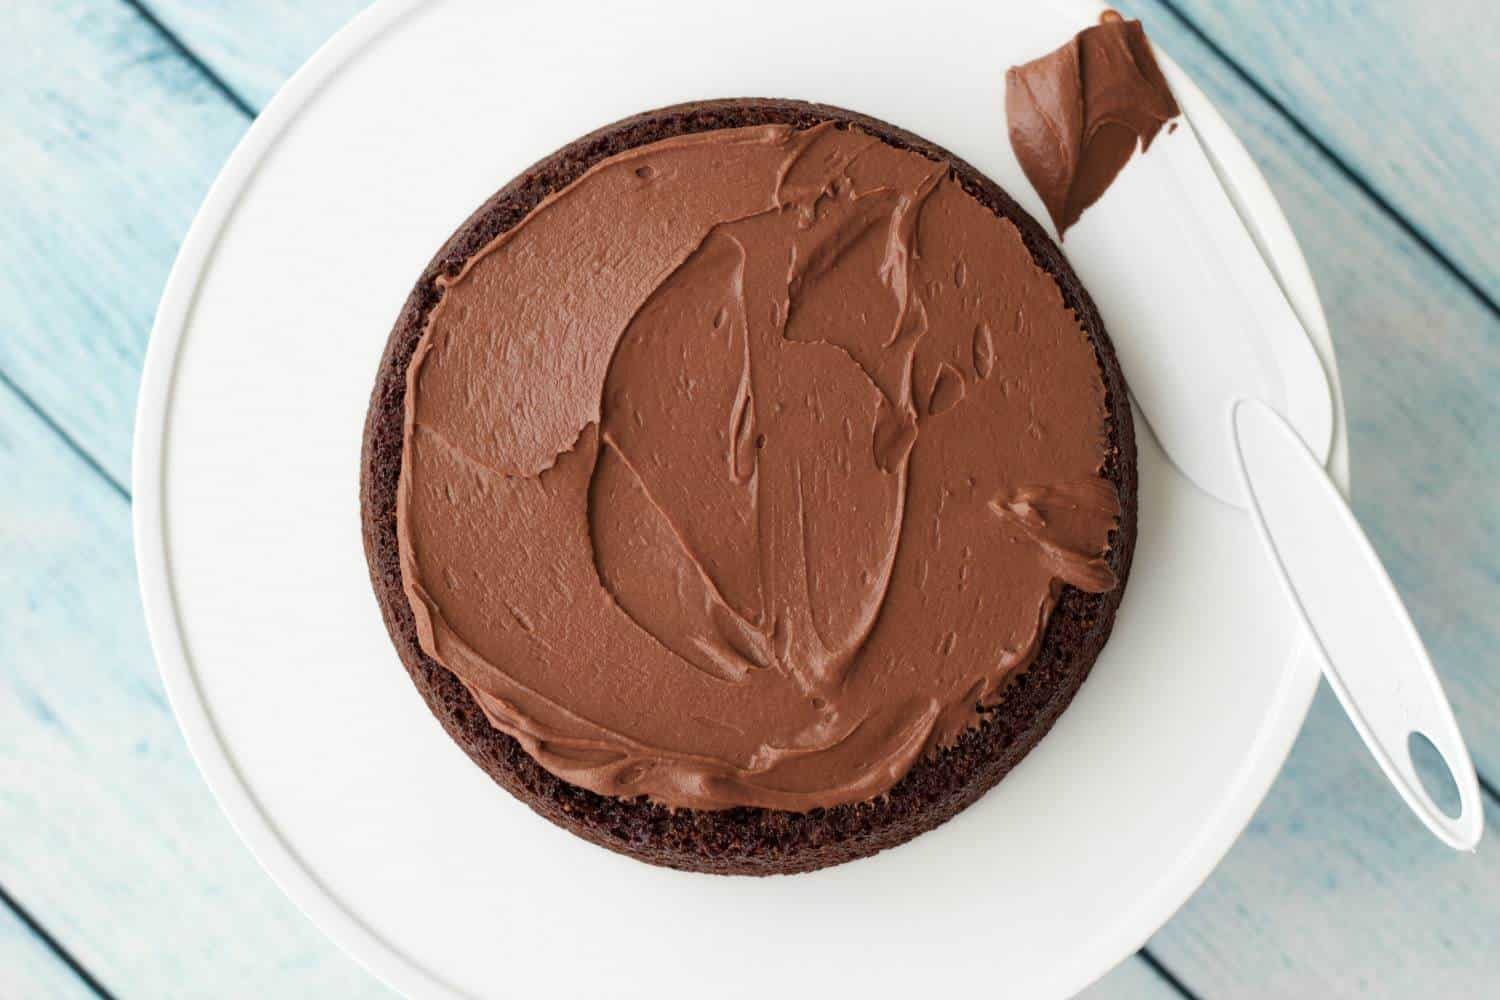 Vegan Chocolate Ganache Frosting